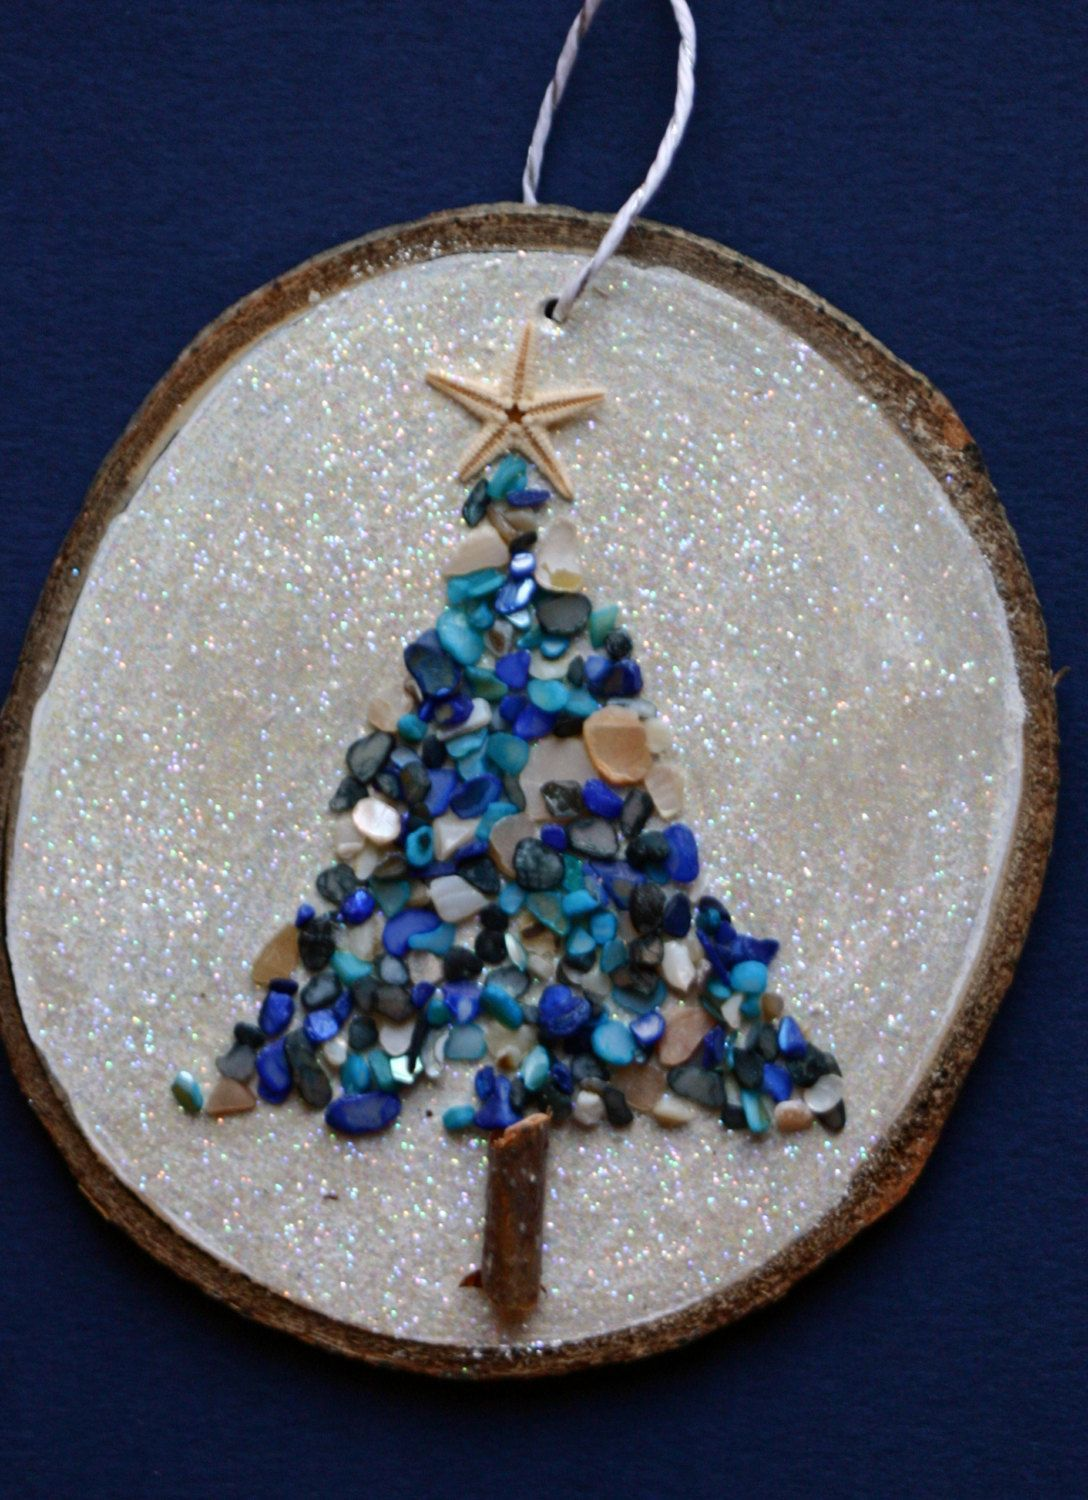 Christmas ornament, wood slice ornament, large birch slice, wall art, beachy, bathroom art, star fish, sea glass, glitter, blue and white by DeborahMcGeeArt on Etsy